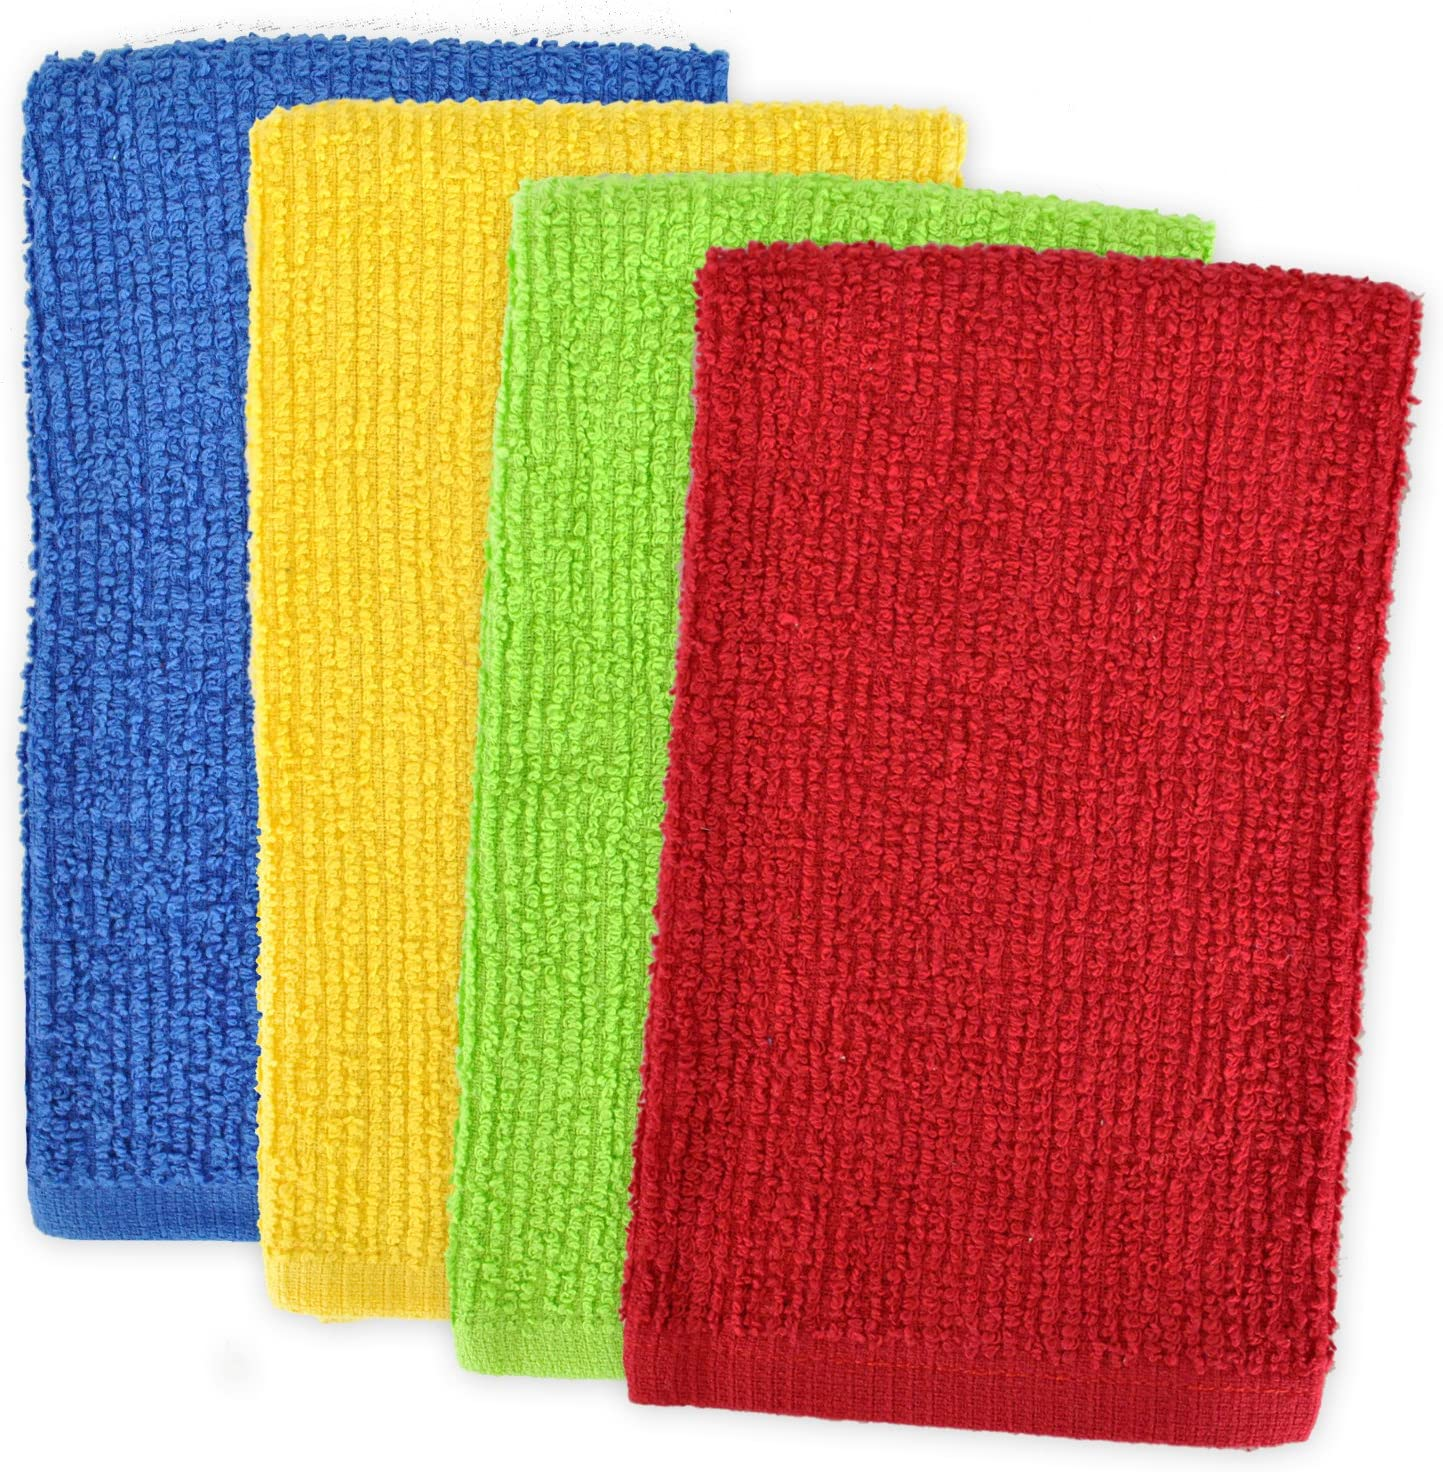 16 x 19 /& Dishcloths 12 x 12 Set of 8 DII Kitchen Bar Mop Dishtowels Assorted Bright